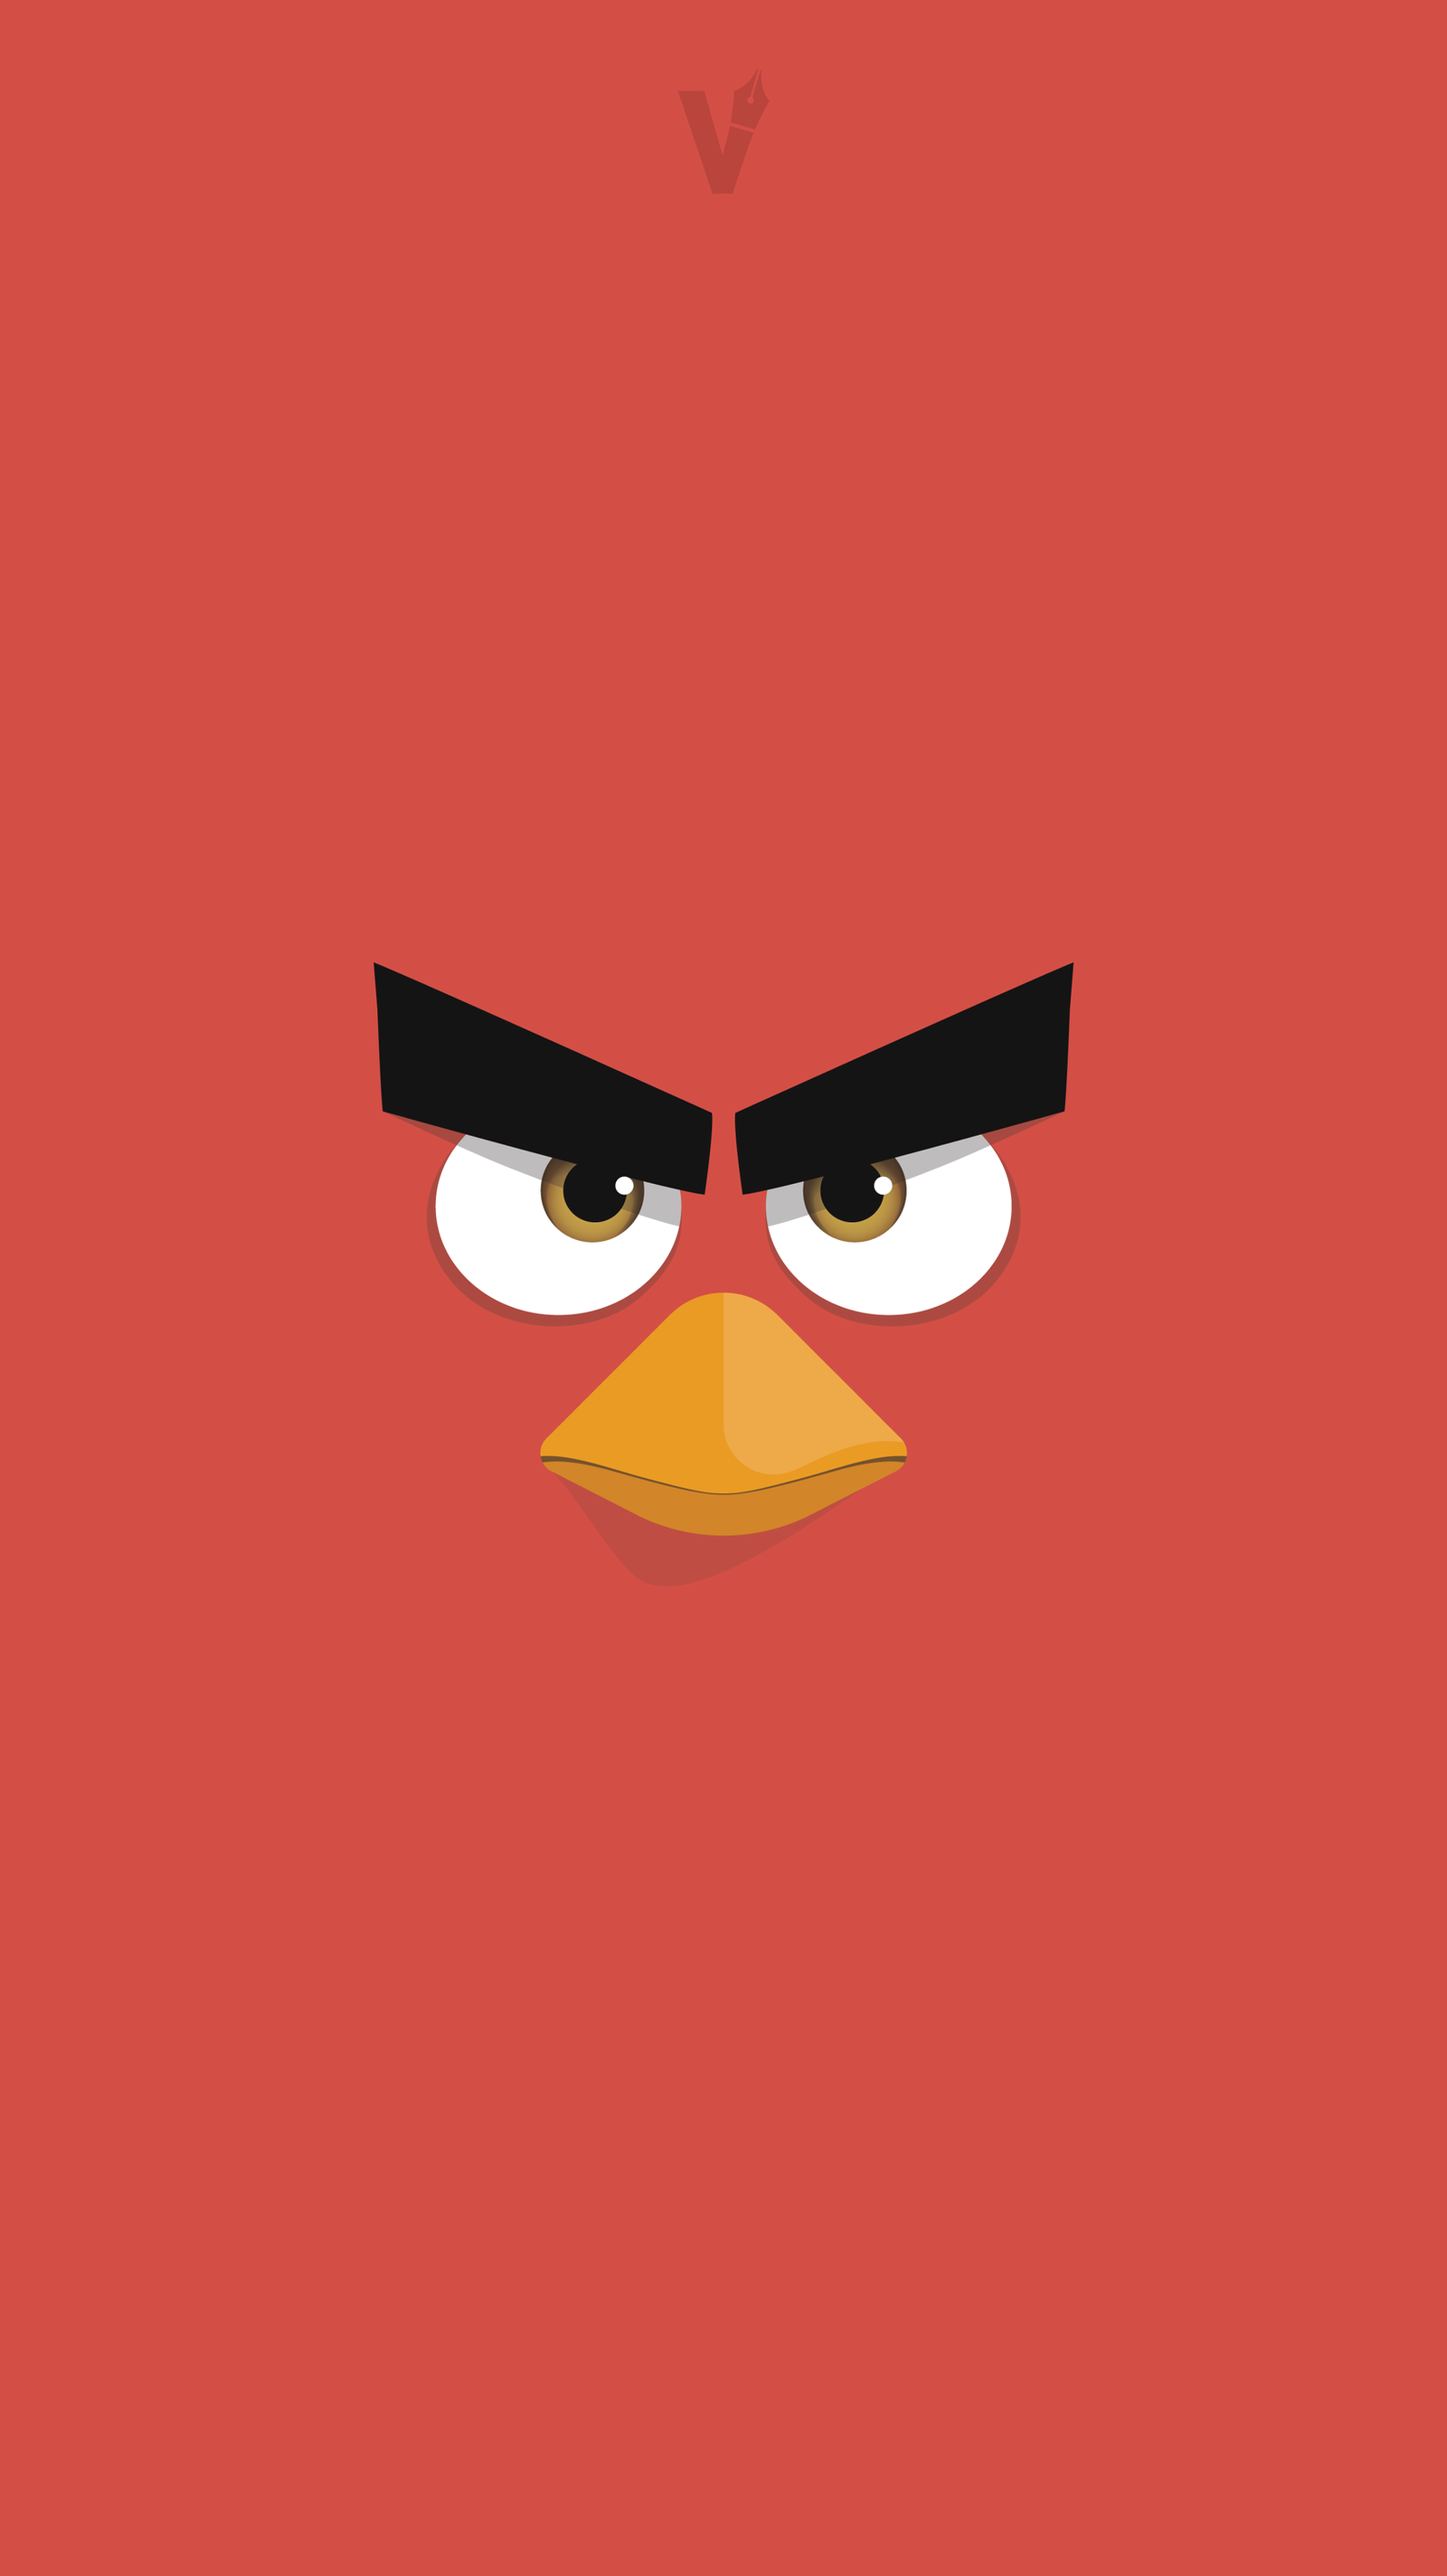 red - angry birds flat wallpaper/lockscreen.armaghanbashir on